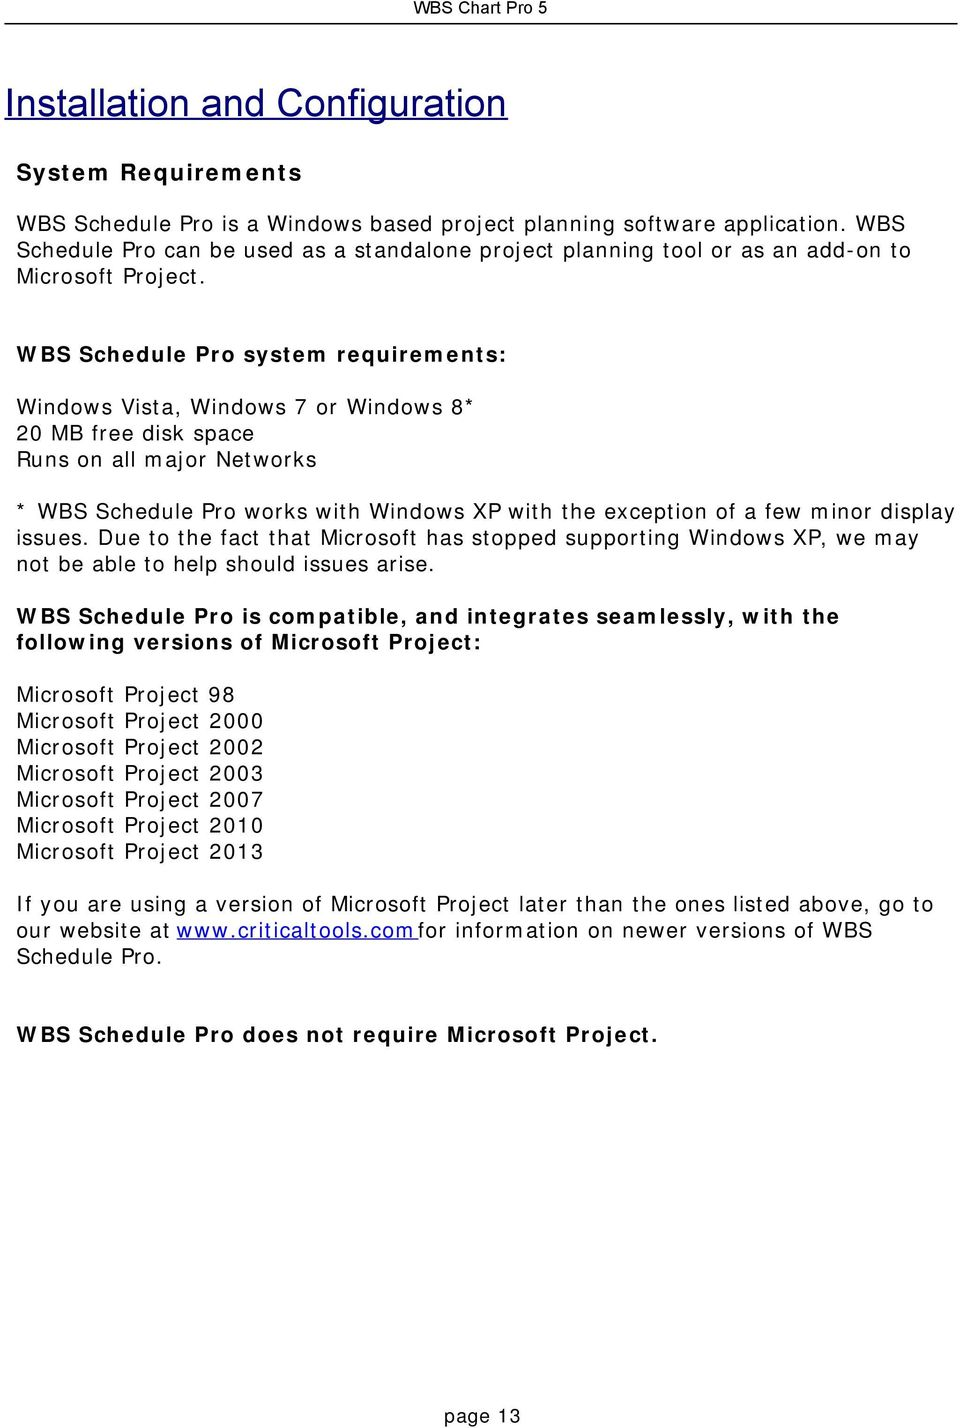 WBS Schedule Pro system requirements: Windows Vista, Windows 7 or Windows 8* 20 MB free disk space Runs on all major Networks * WBS Schedule Pro works with Windows XP with the exception of a few